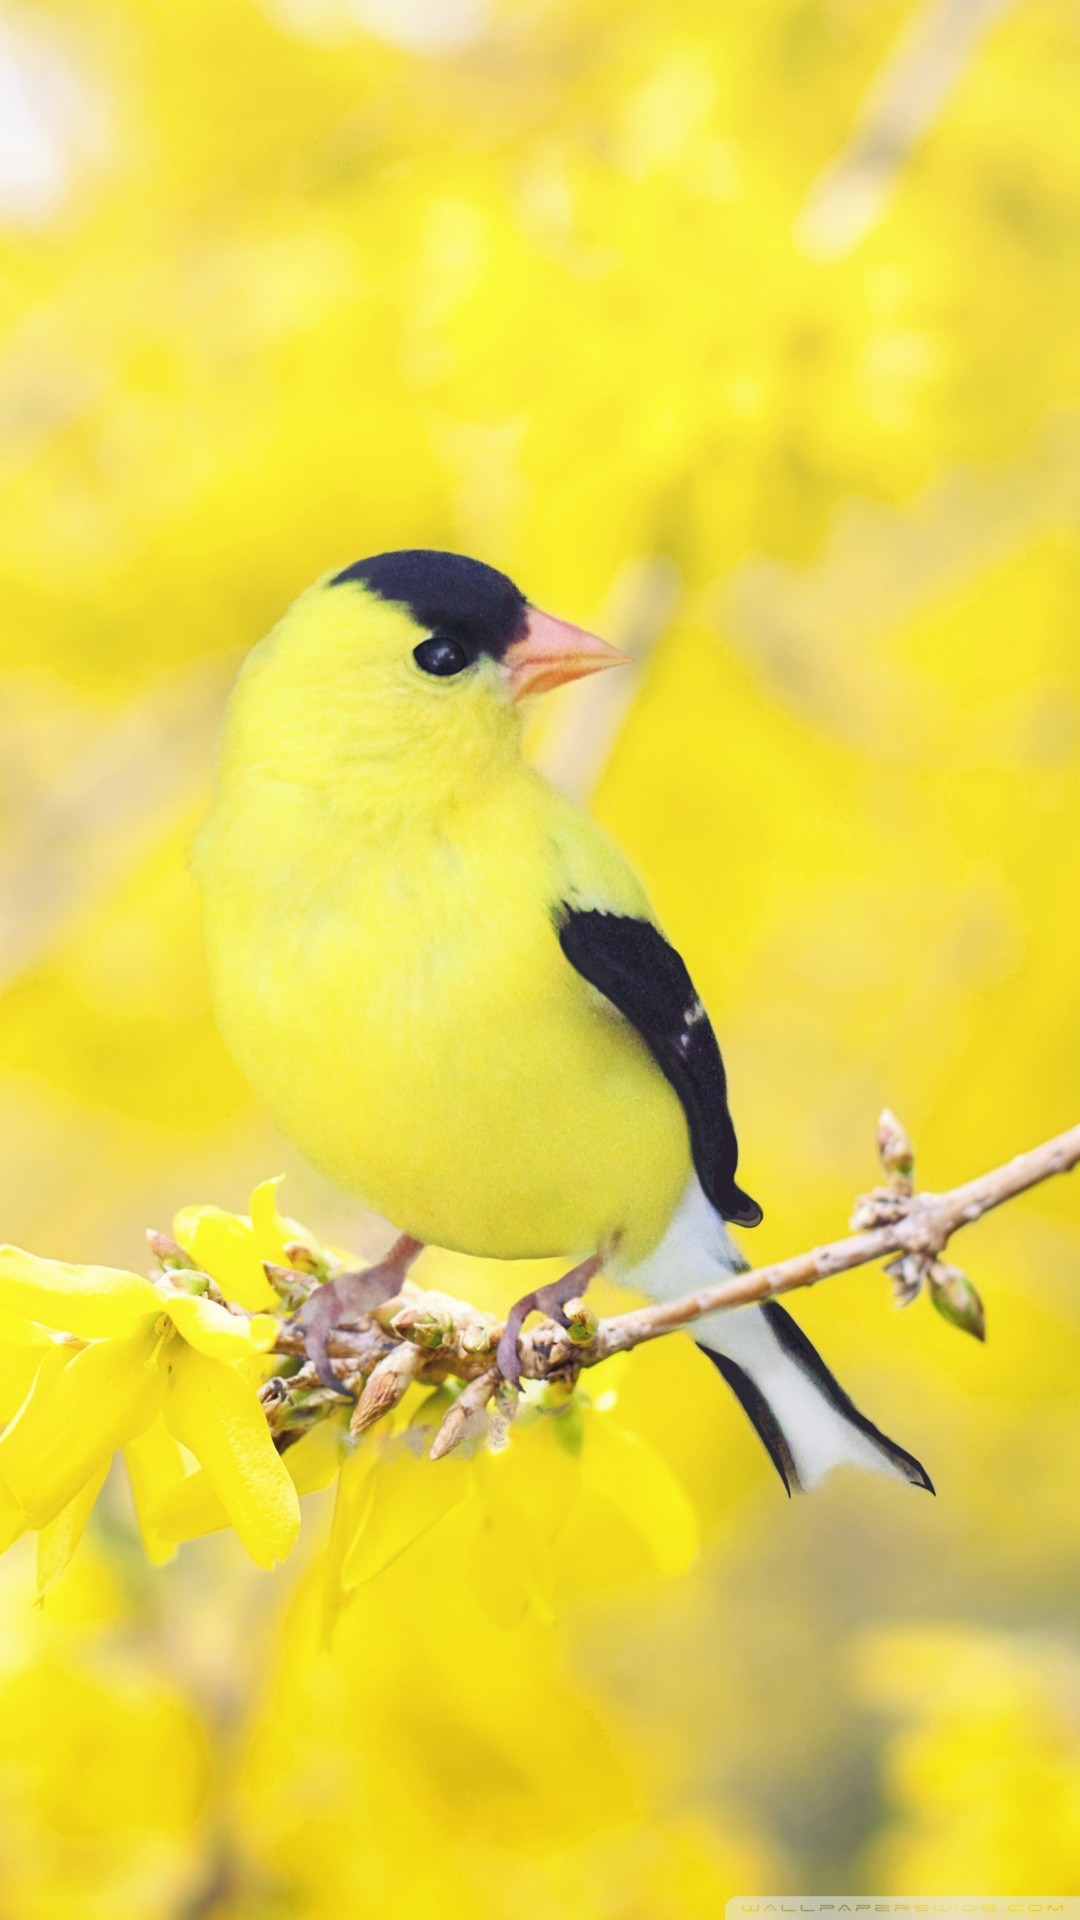 Free Black and Yellow Bird, Forsythia Flowers, Spring phone wallpaper by zarivia